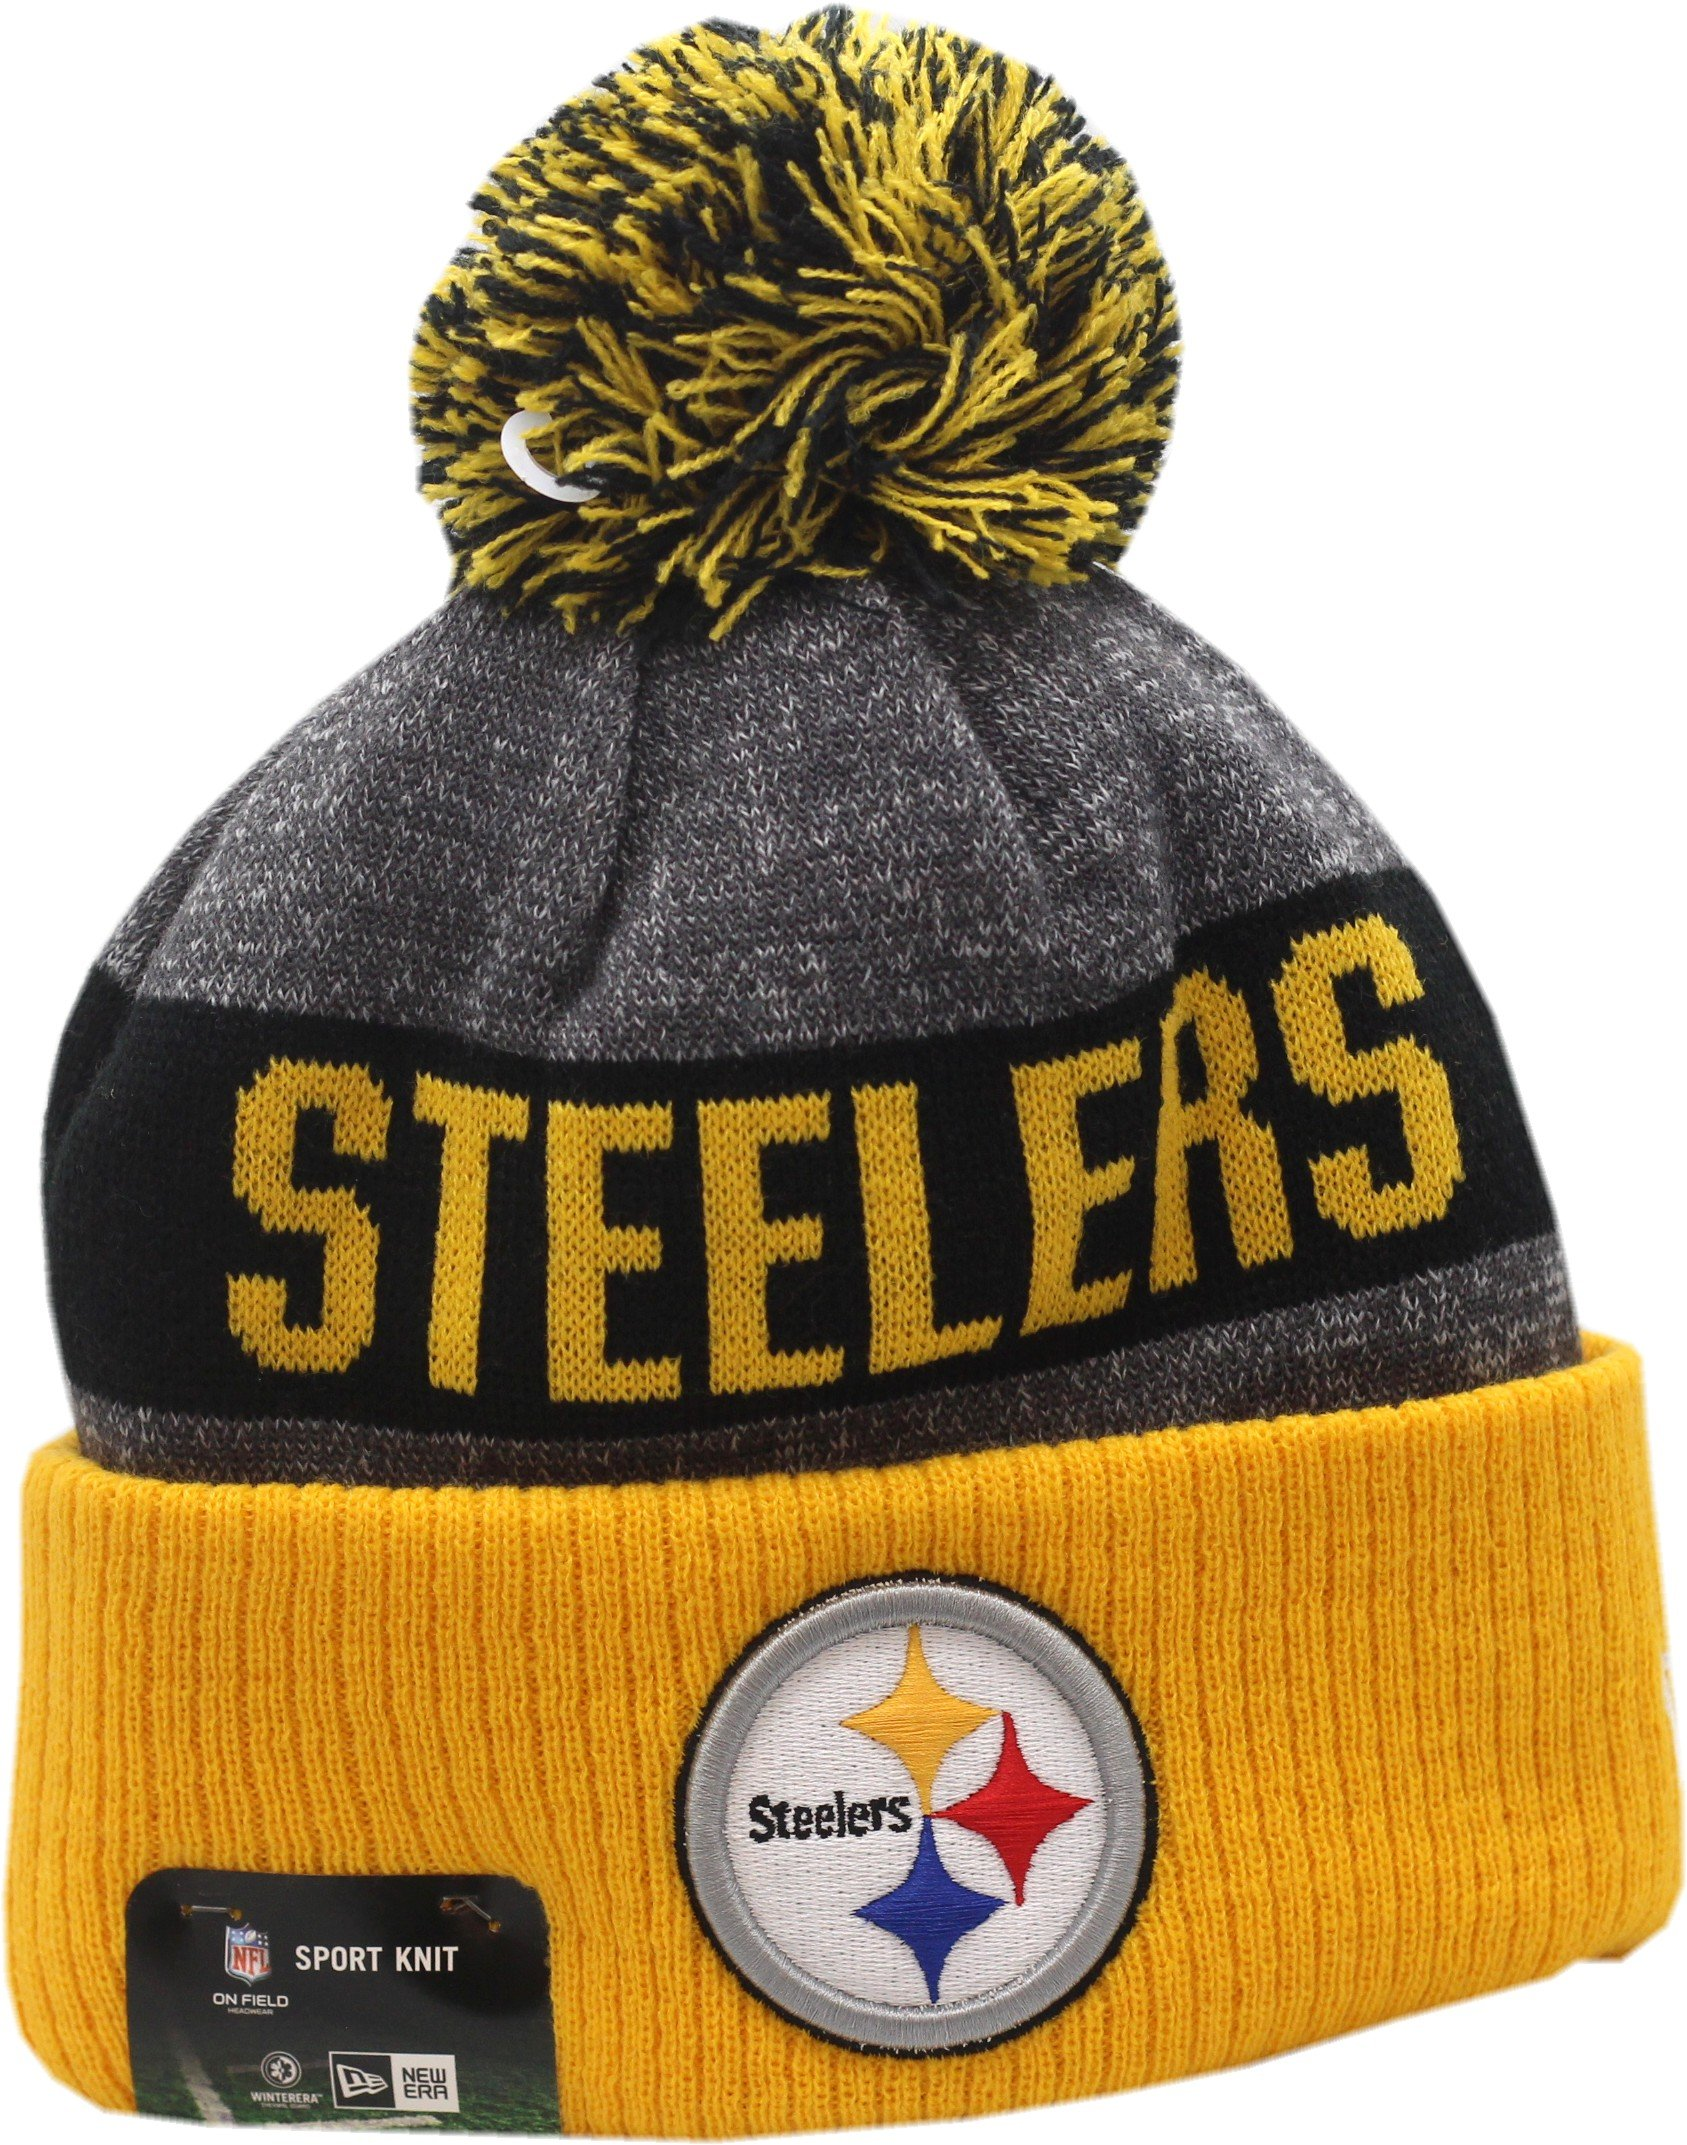 59c41f8ed Buy Pittsburgh Steelers 2014 New Era On-Field Sport Knit Sideline ...